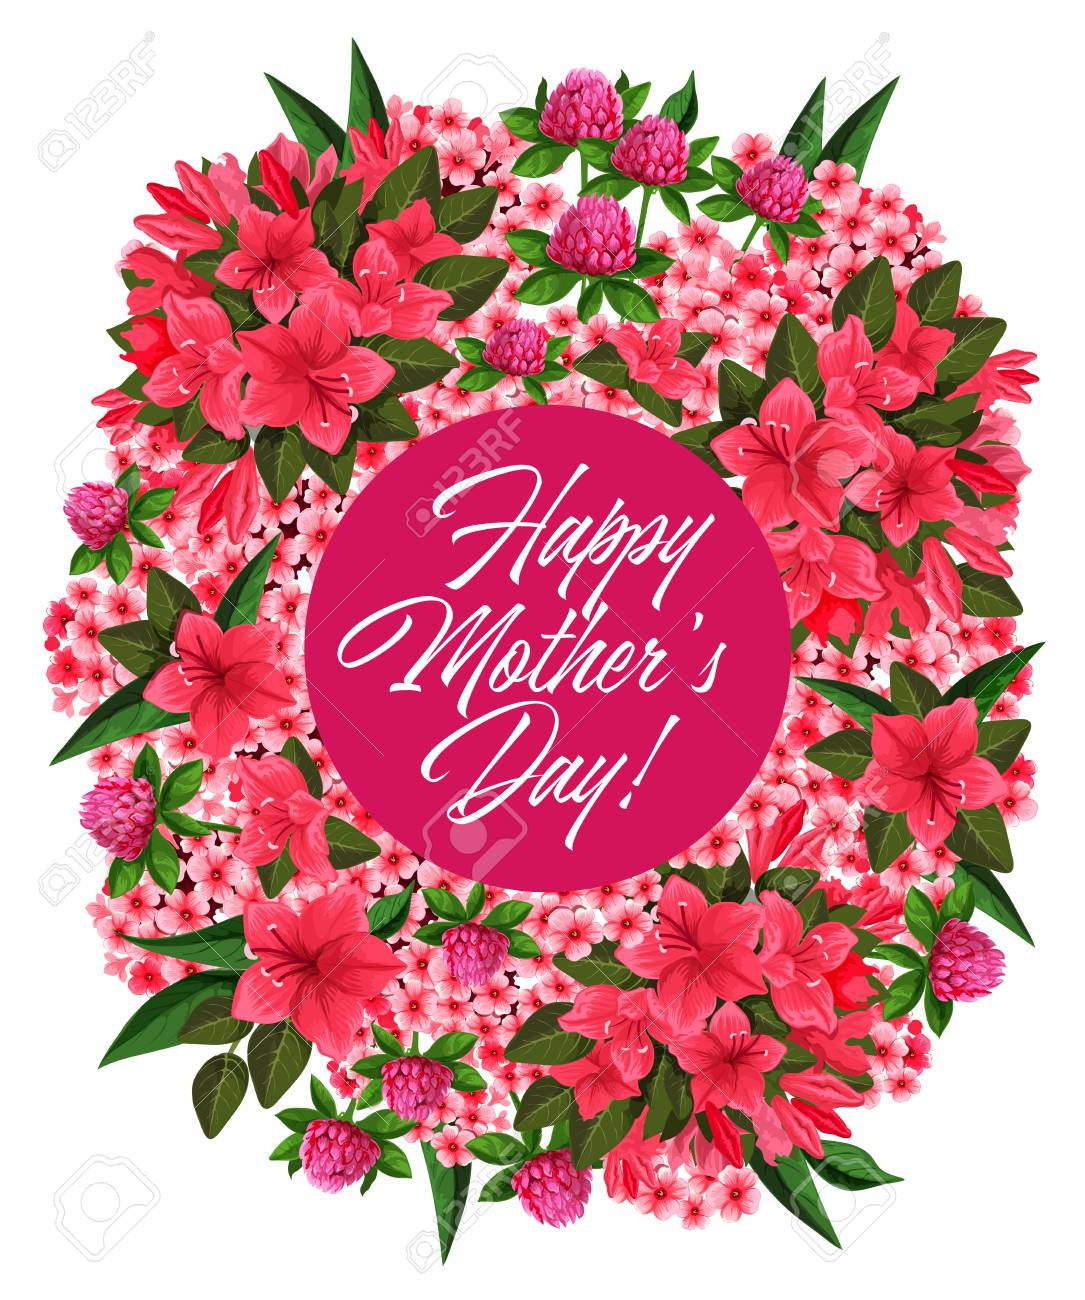 Mothers Day Pink Flower Wreath Greeting Card Design Royalty Free